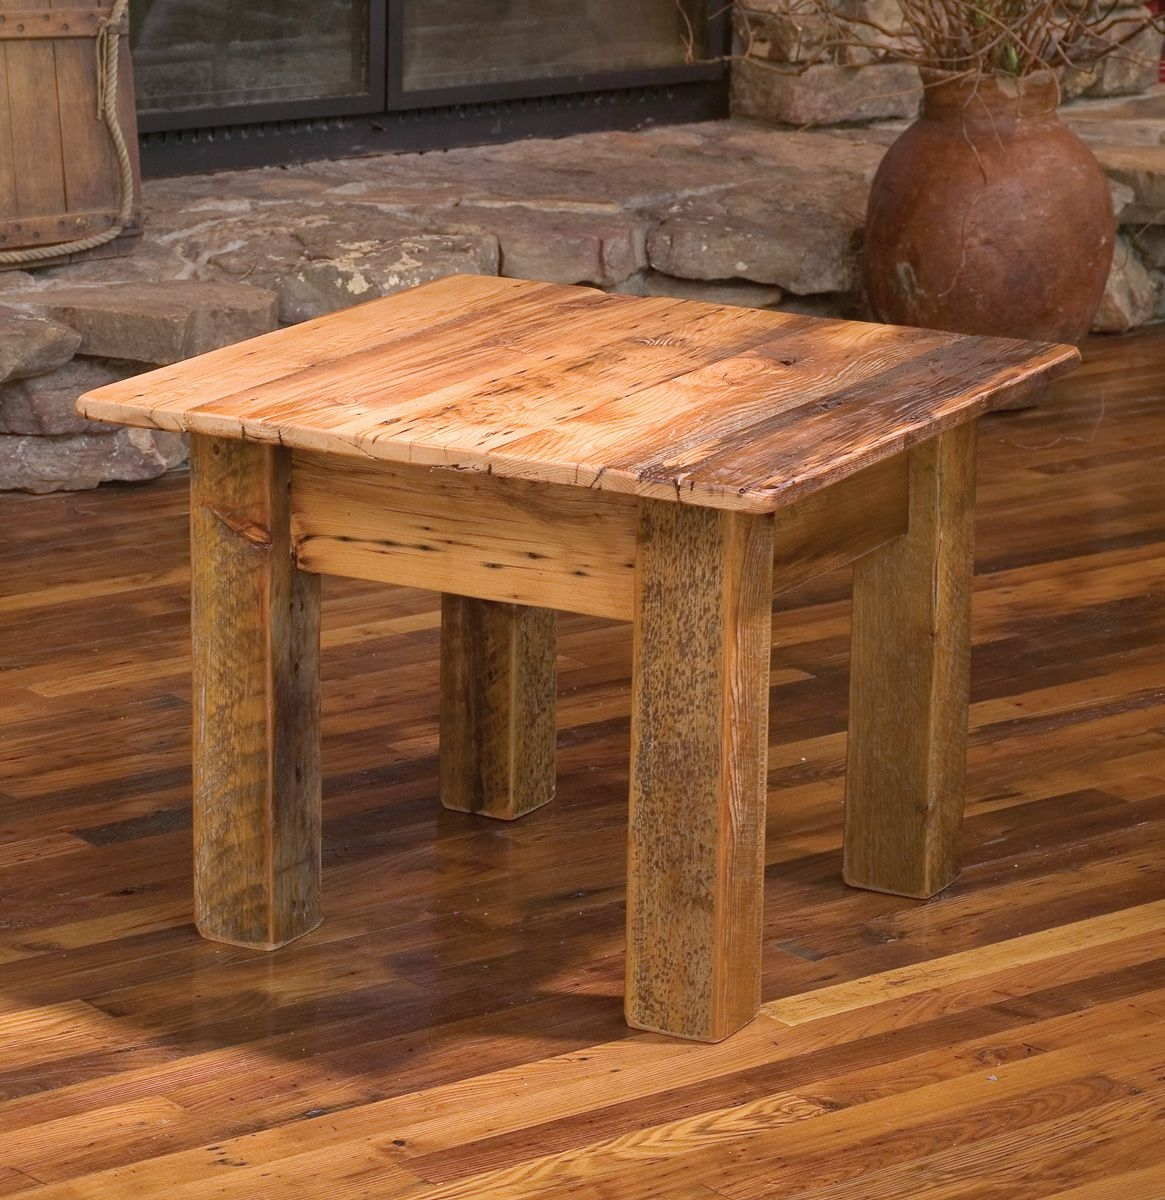 reclaimed barn wood furniture rustic mall timber regarding end table decorating unfinished accent architecture uttermost samuelle fir with regard side chairs inch square